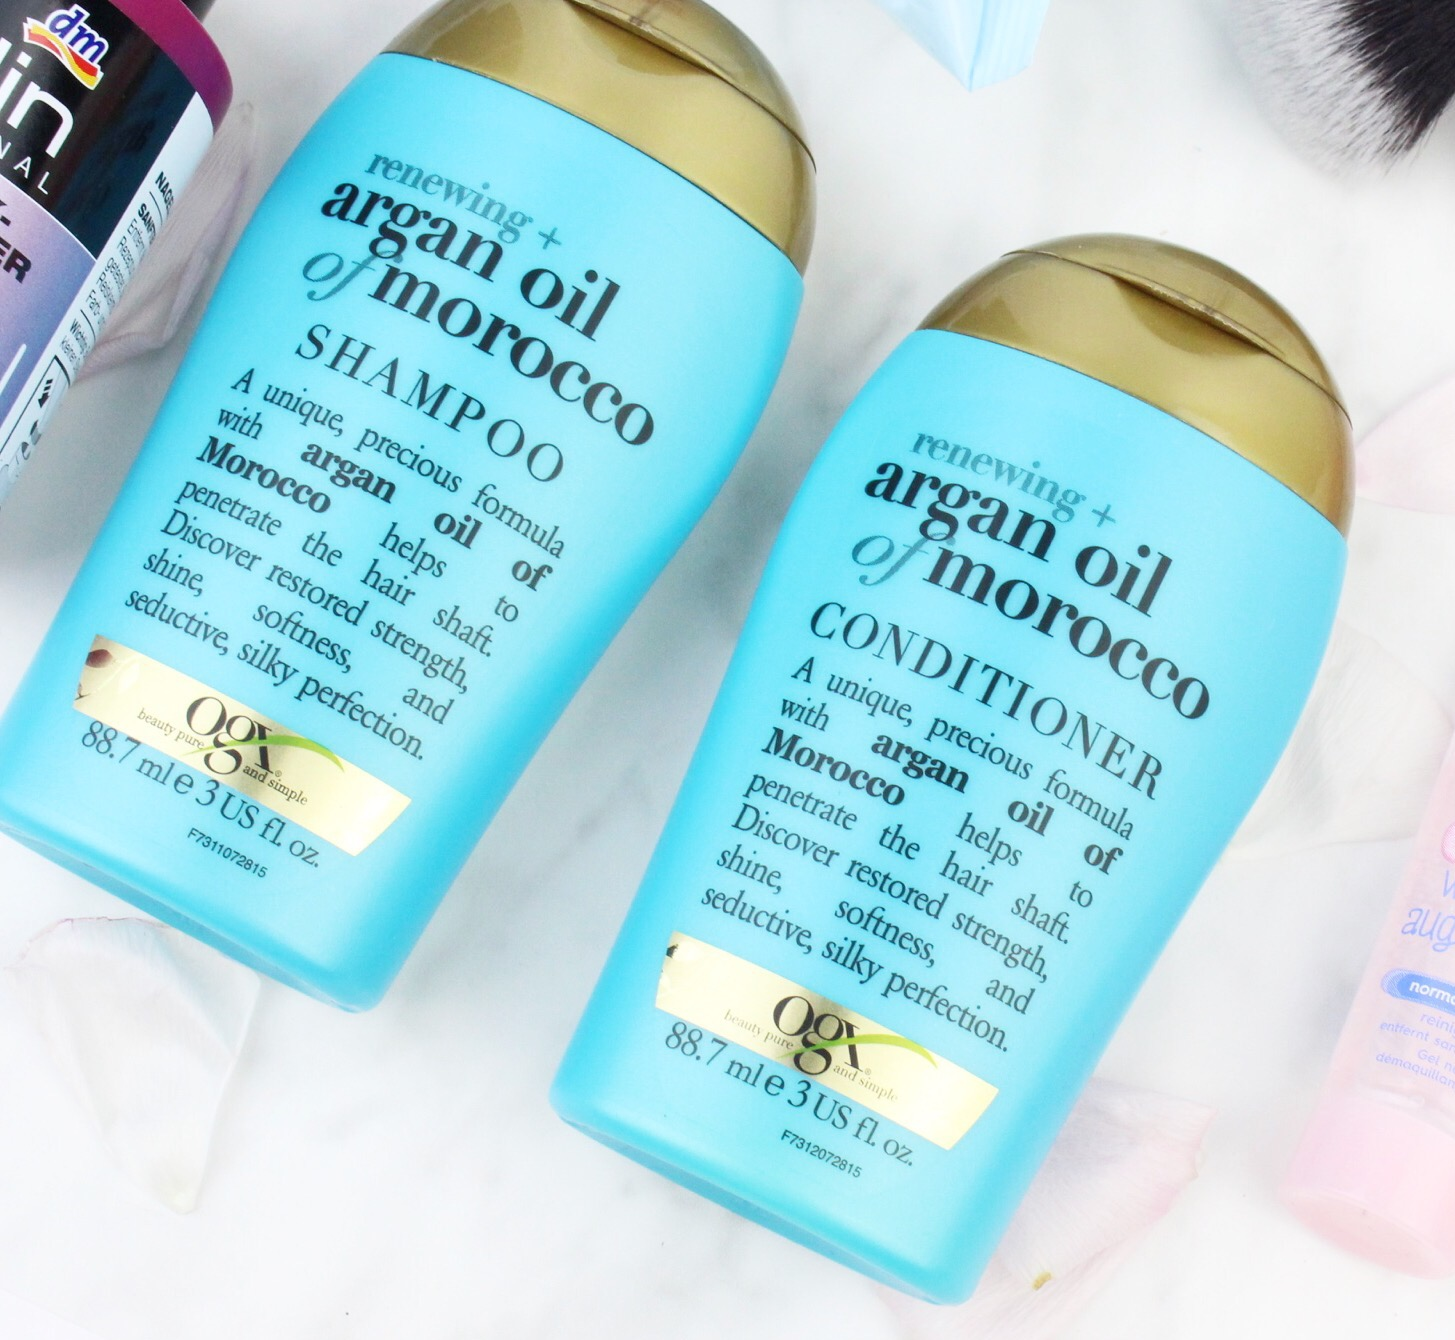 Review – 'Argan Oil of Morocco' Shampoo + Conditioner